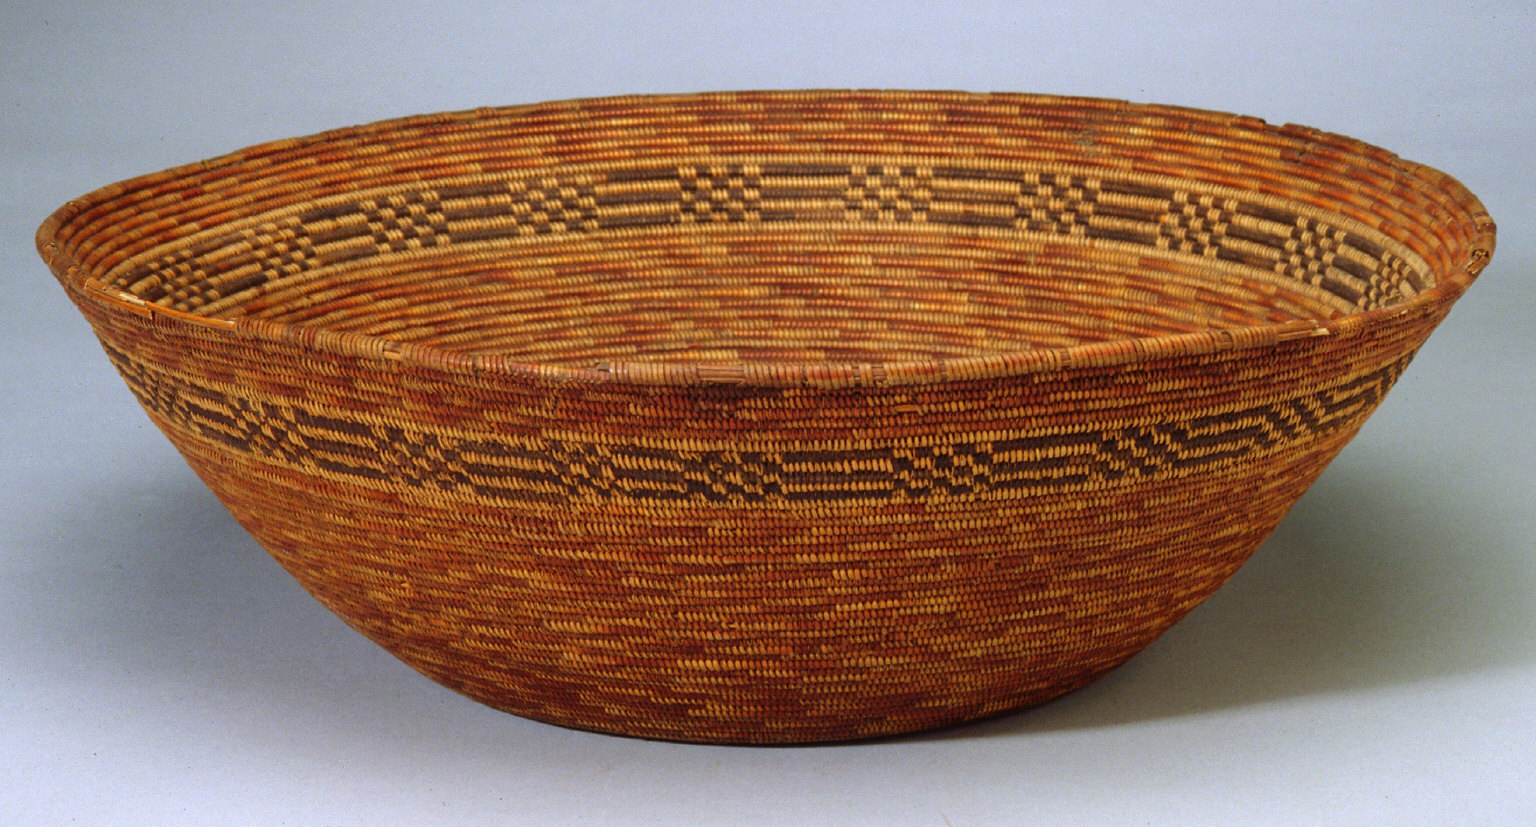 Coiled basket dark brown with black and red designs